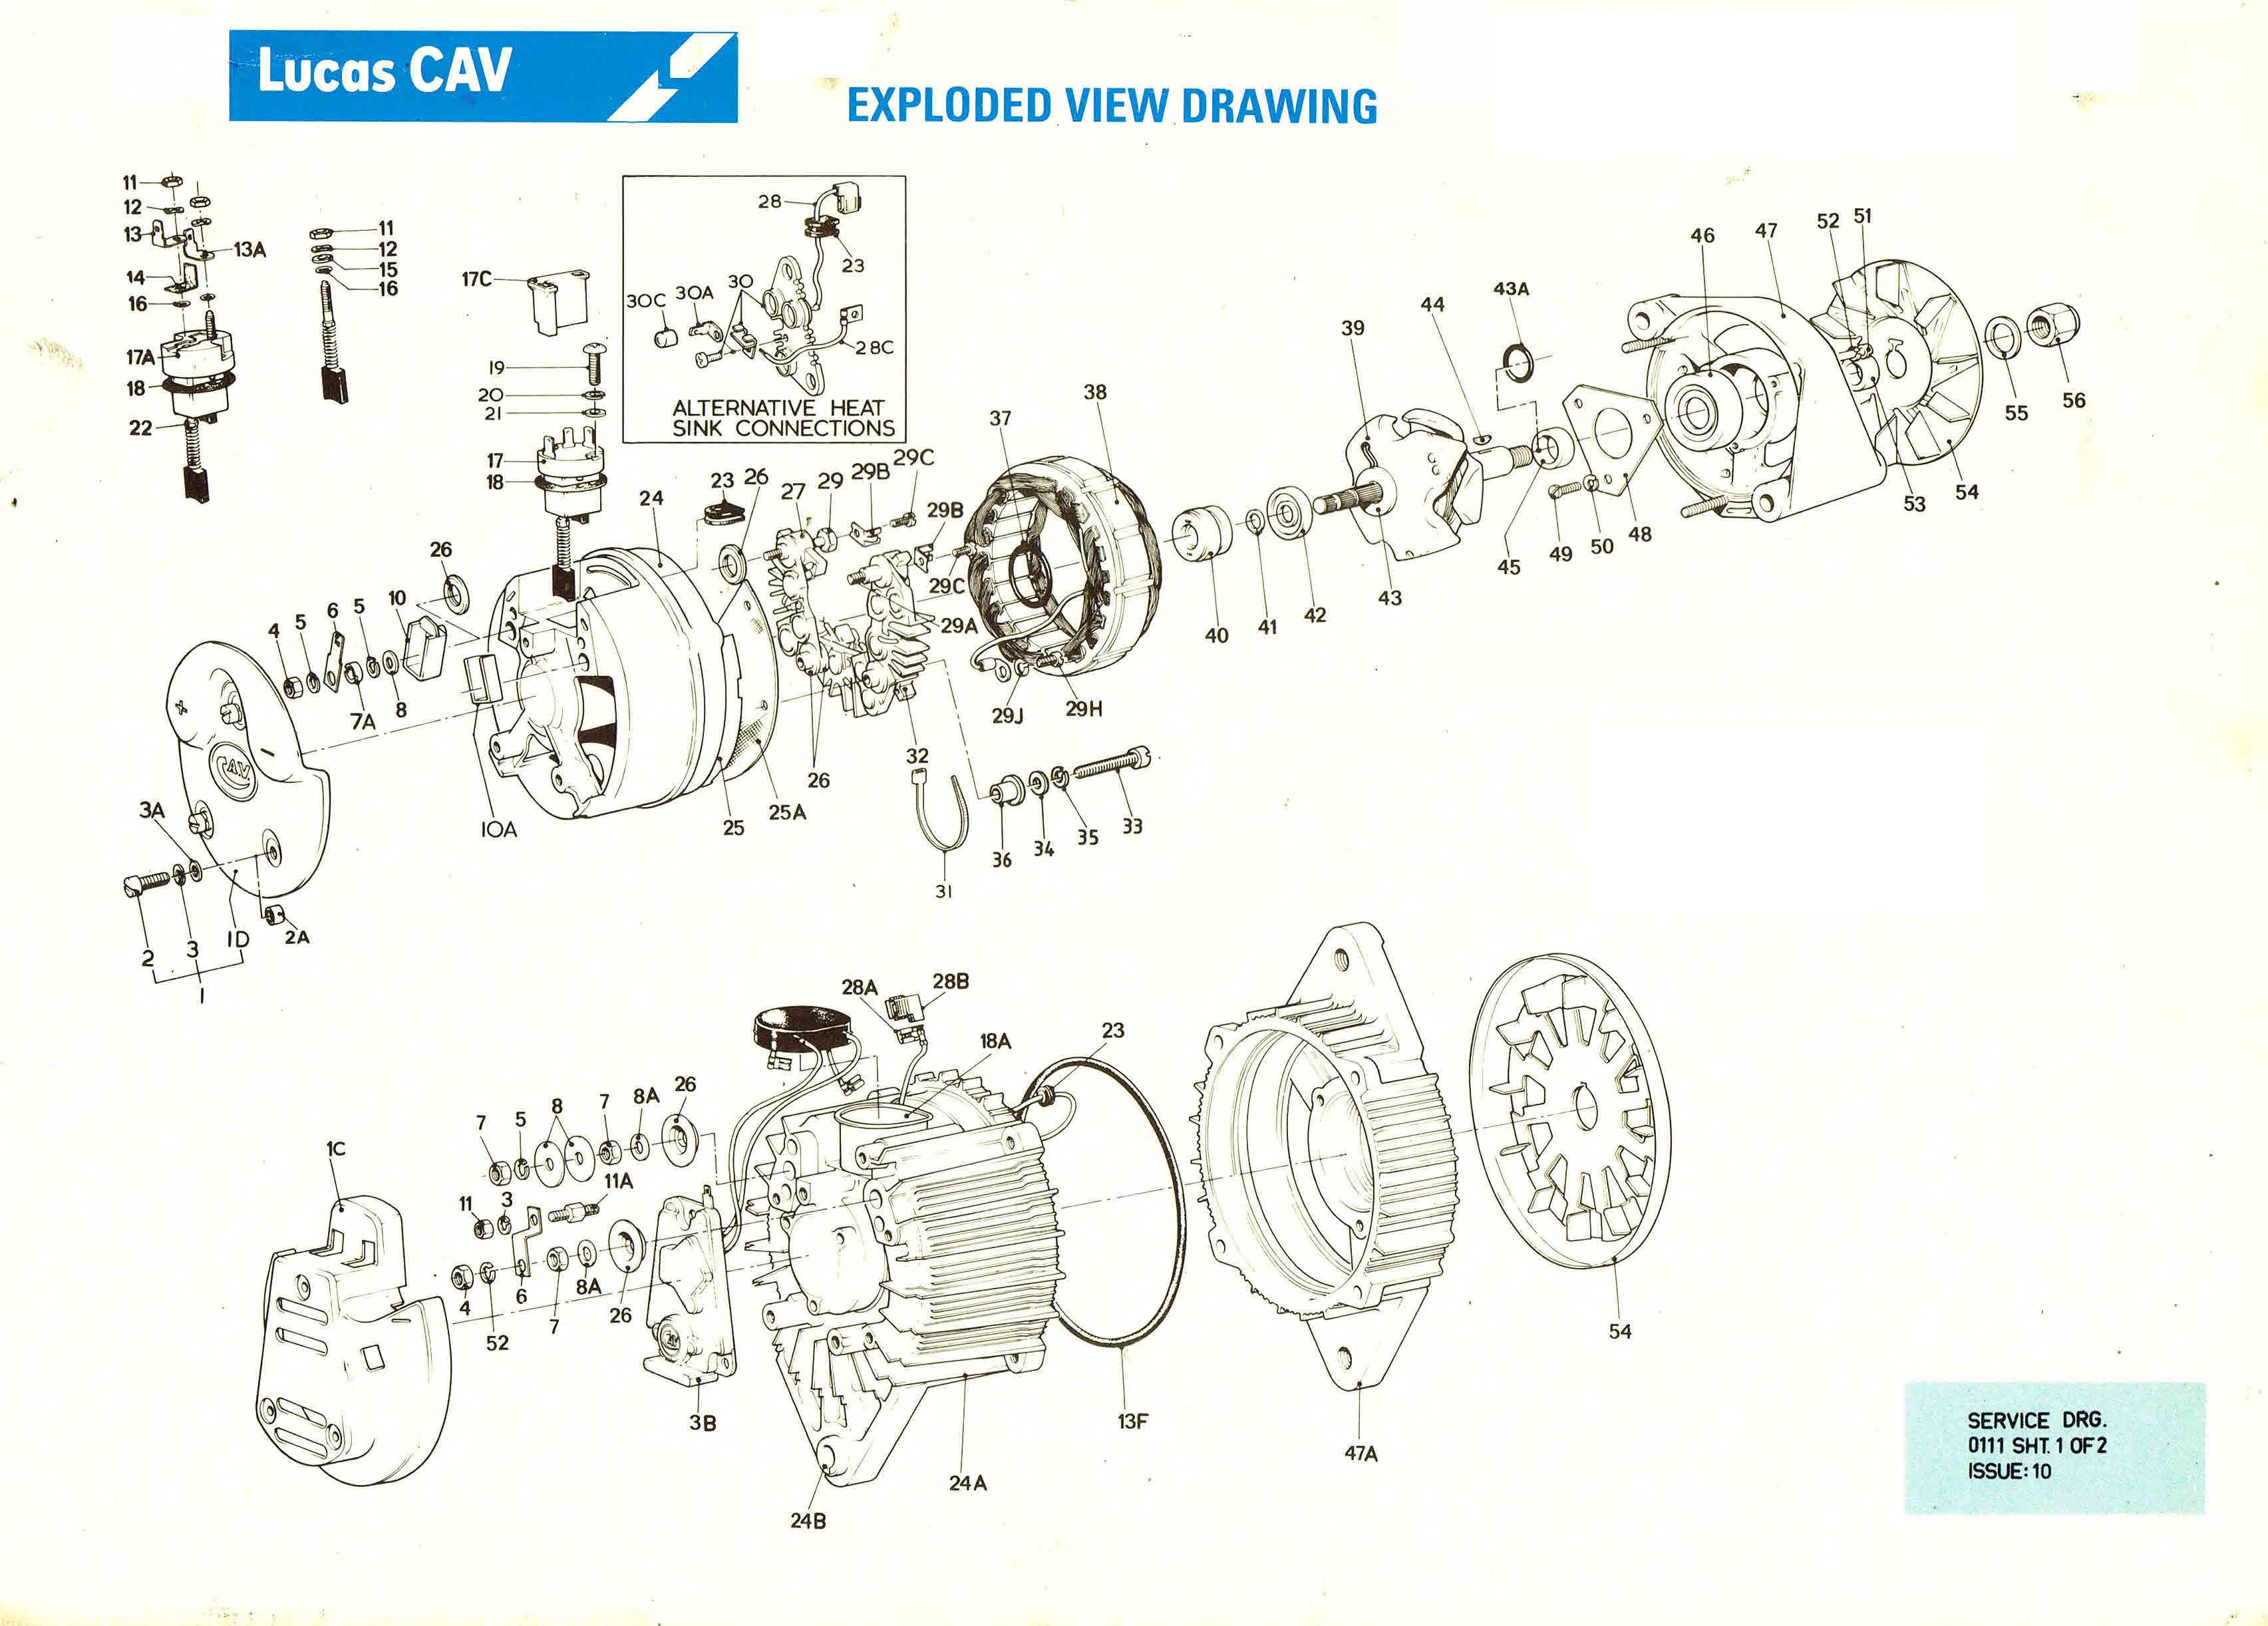 lucas cav aftermarket parts manuals ac alternators s rh sellfy com Lucas Alternator Testing Lucas 18 ACR Alternator